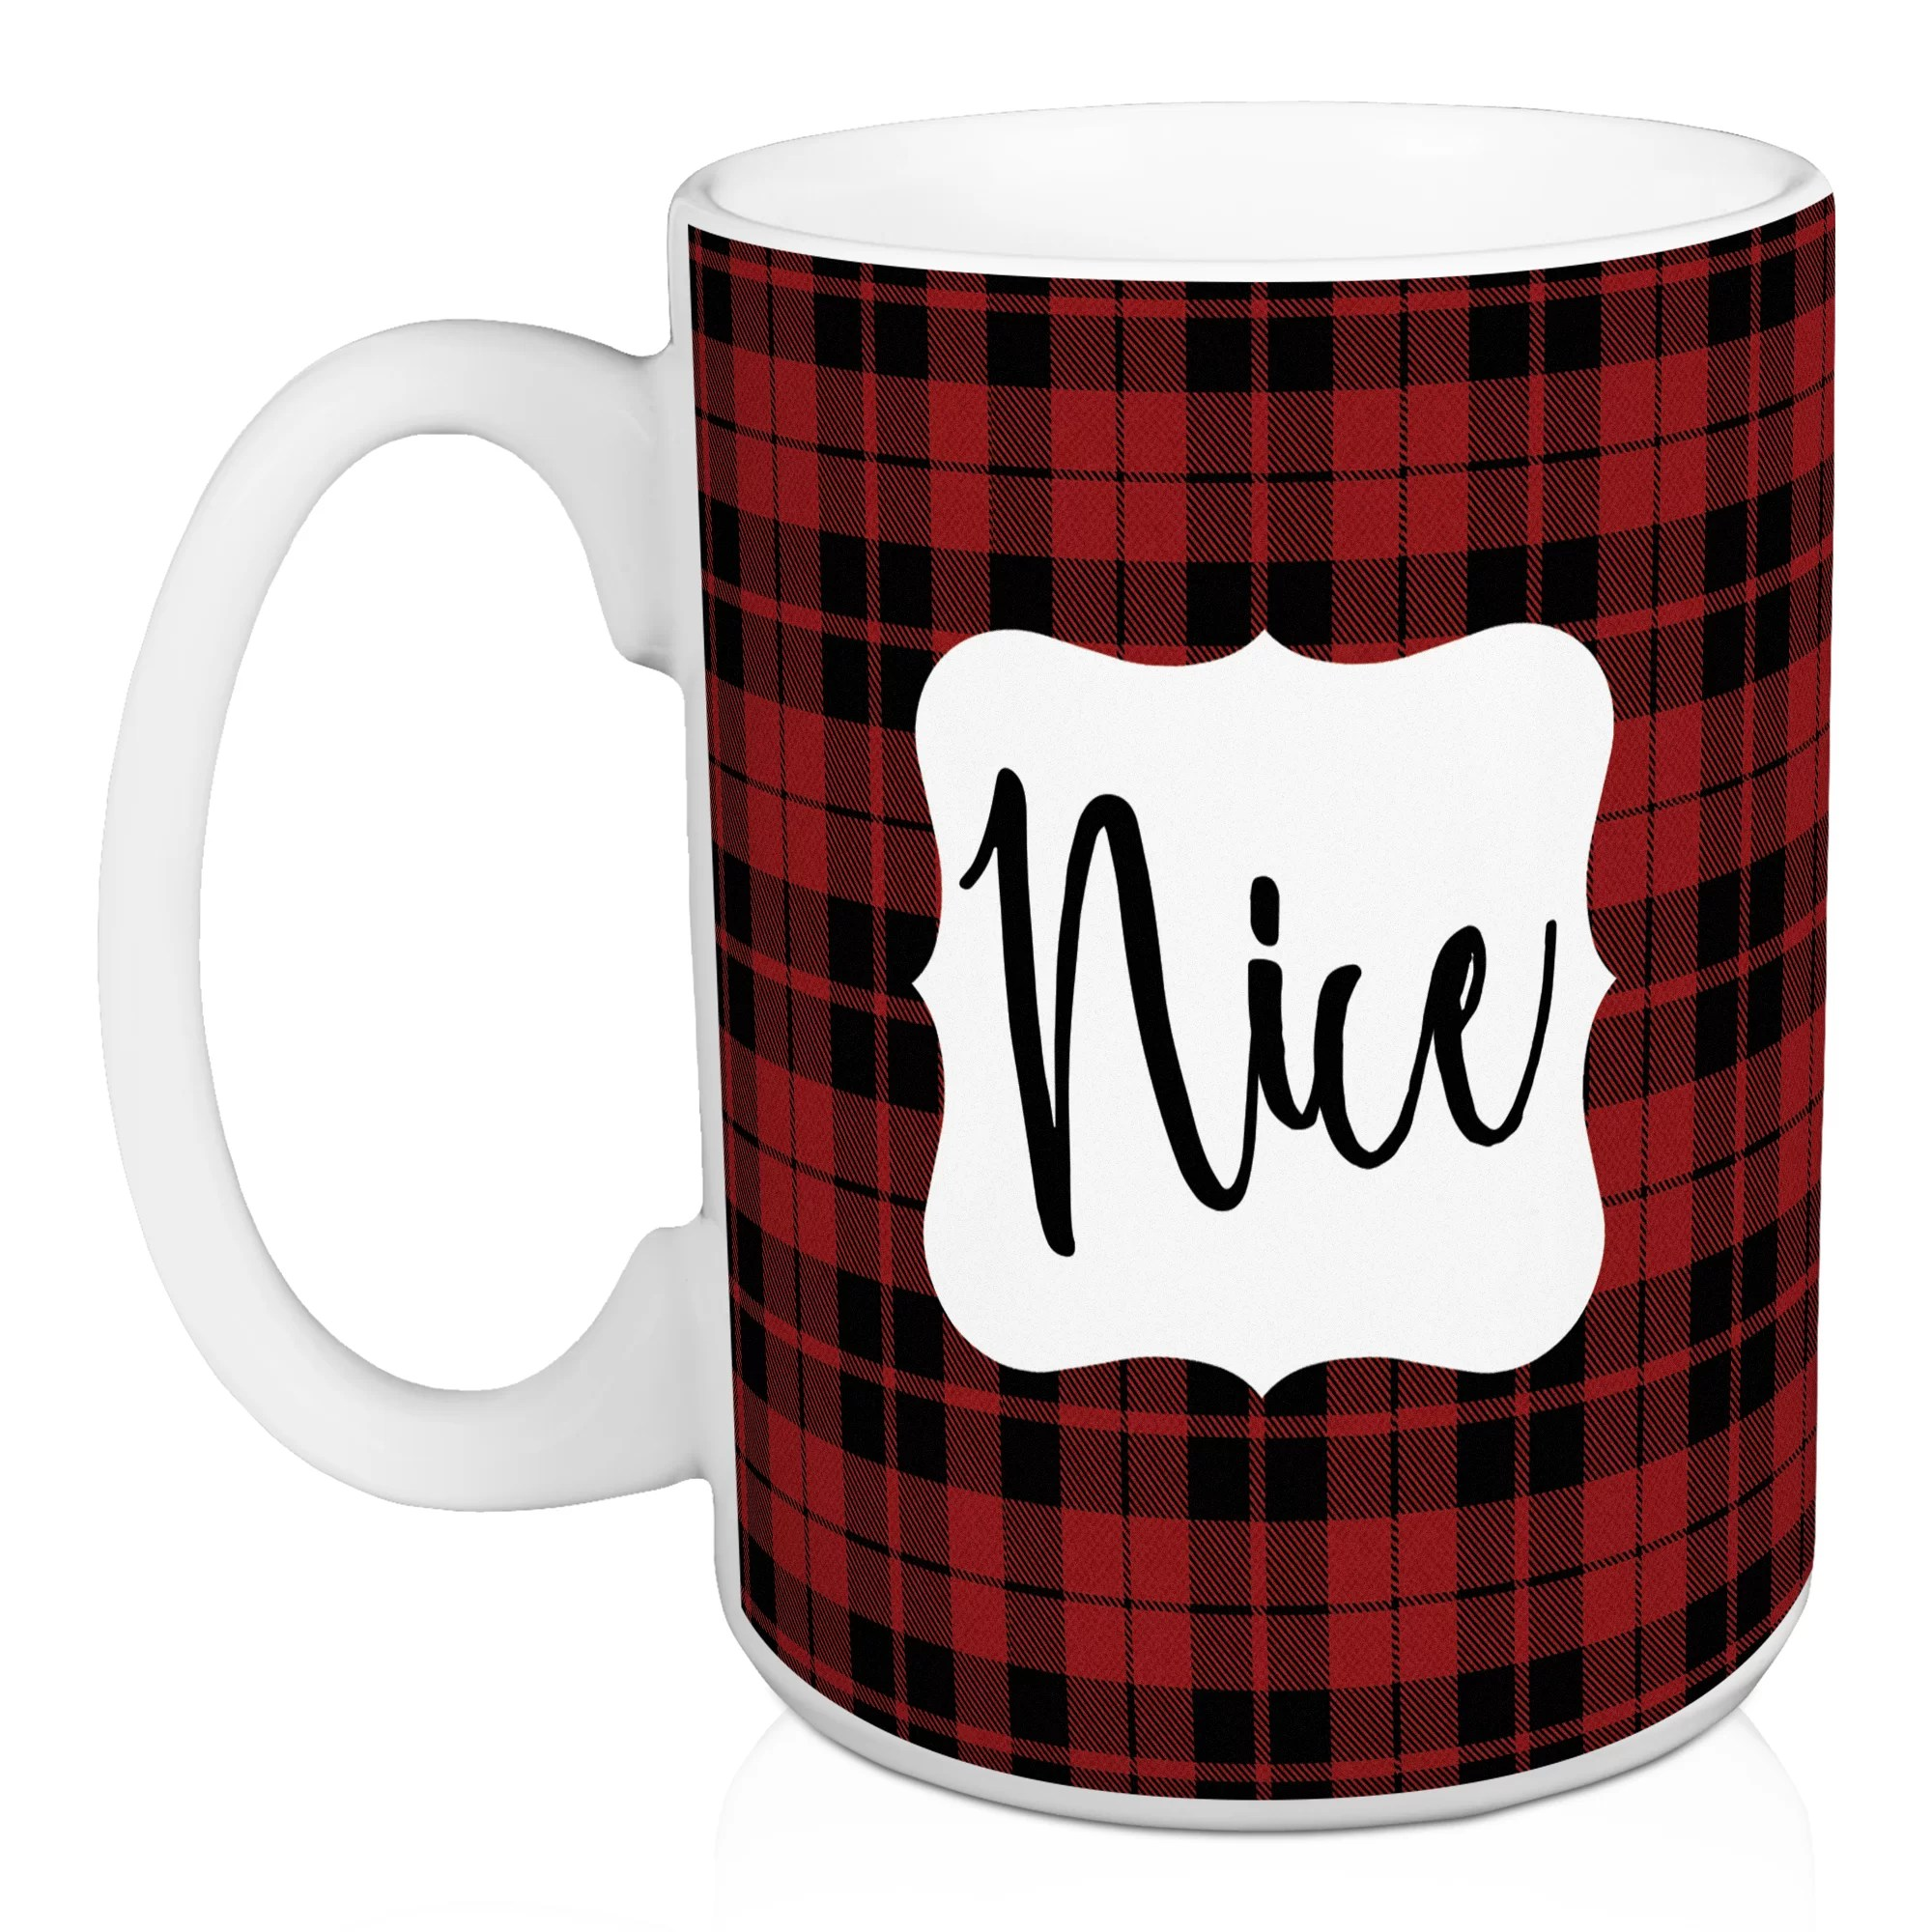 Where To Buy Nice Coffee Mugs Naughty And Nice Coffee Mug